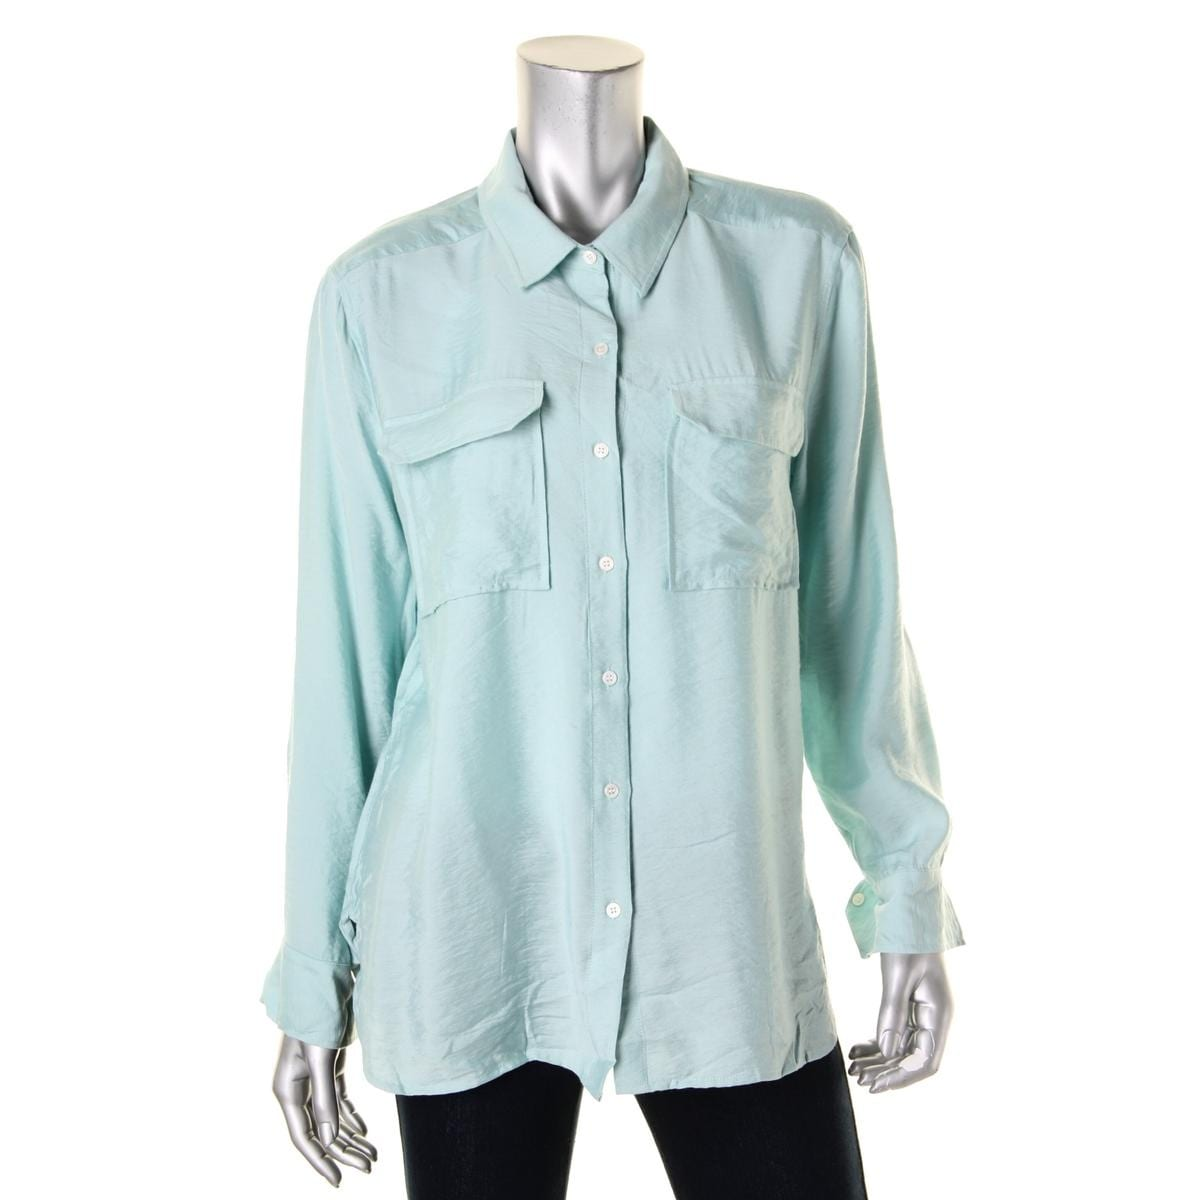 5485d9b8 Shop Two by Vince Camuto Womens Button-Down Top Oversized Long Sleeve - Free  Shipping On Orders Over $45 - Overstock.com - 14398210